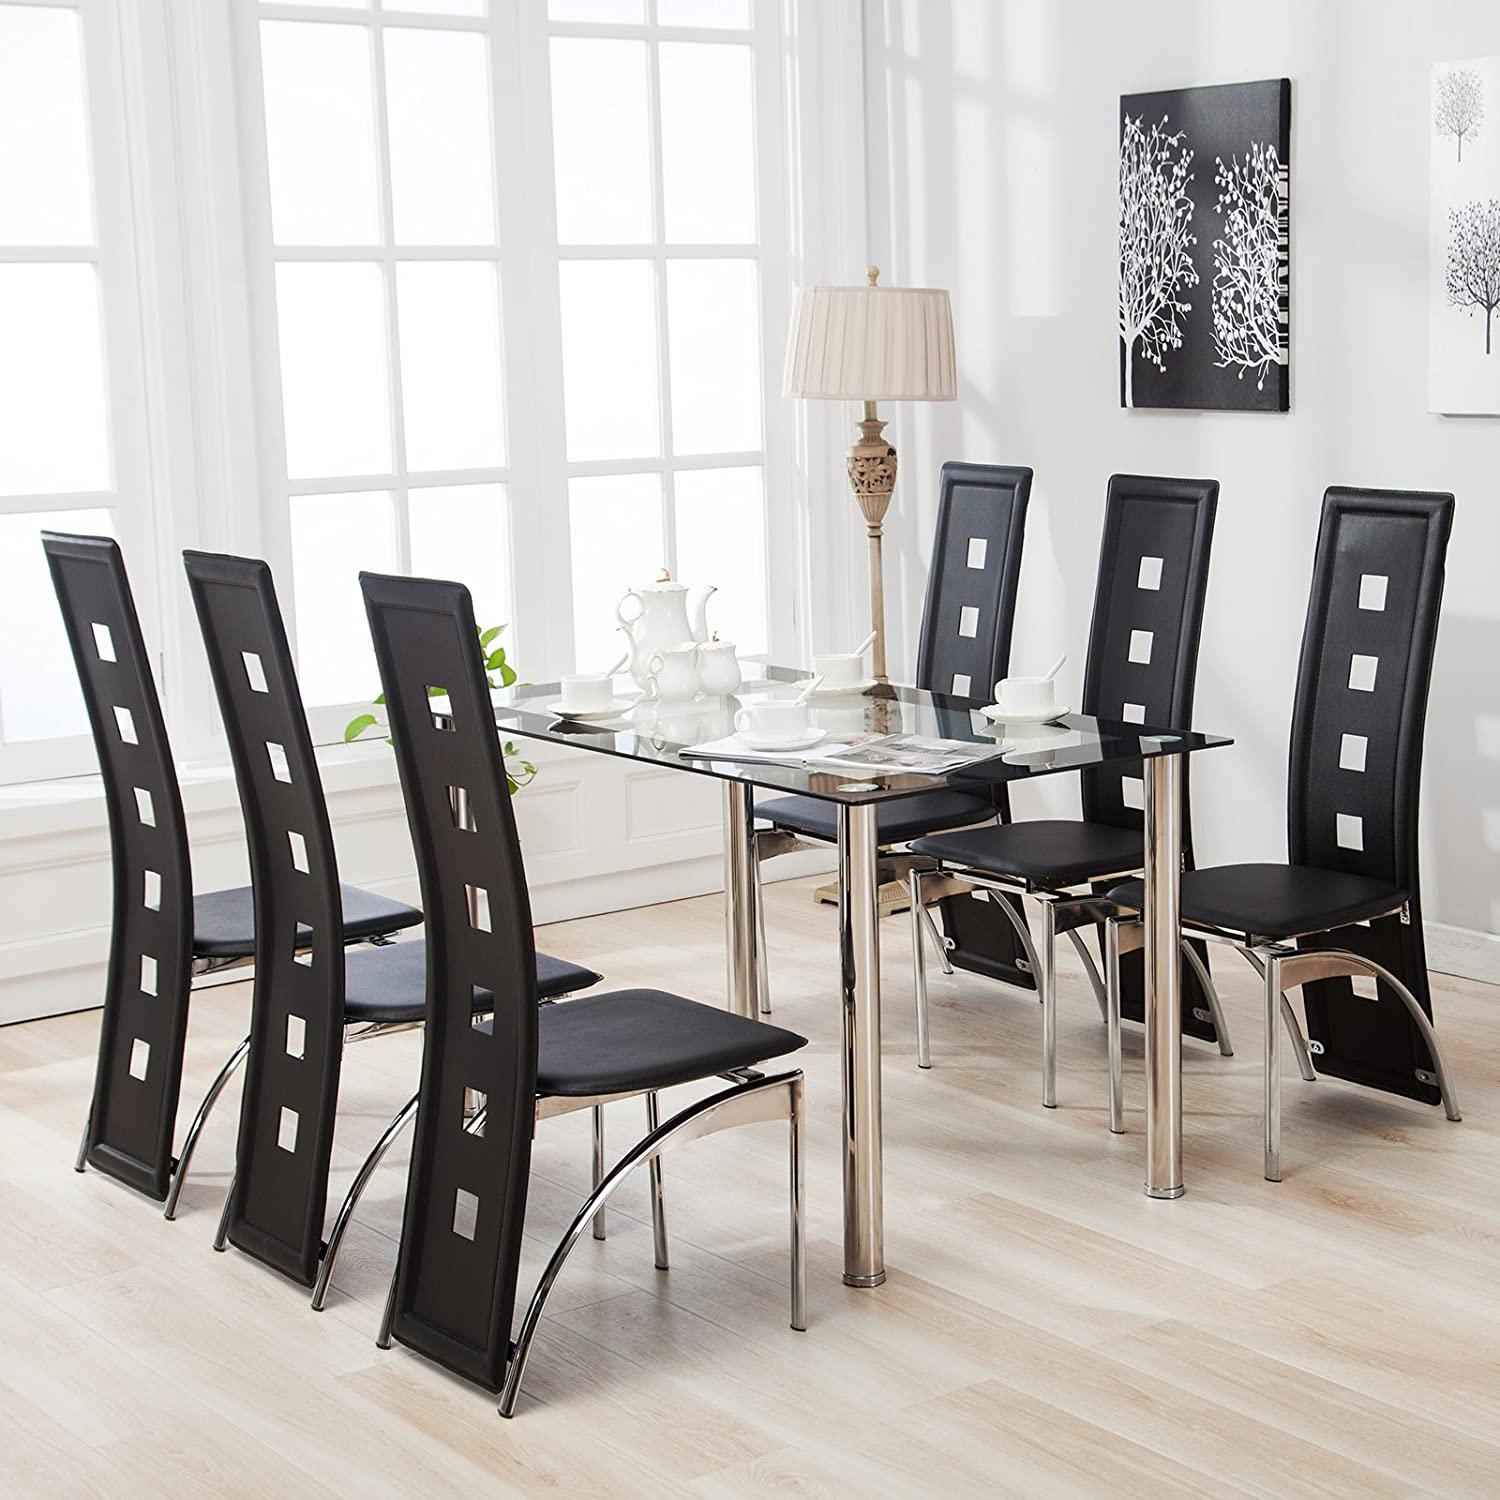 Amazon com mecor glass dining table set 7 piece kitchen table set with 6 leather chairs metal legs black office products